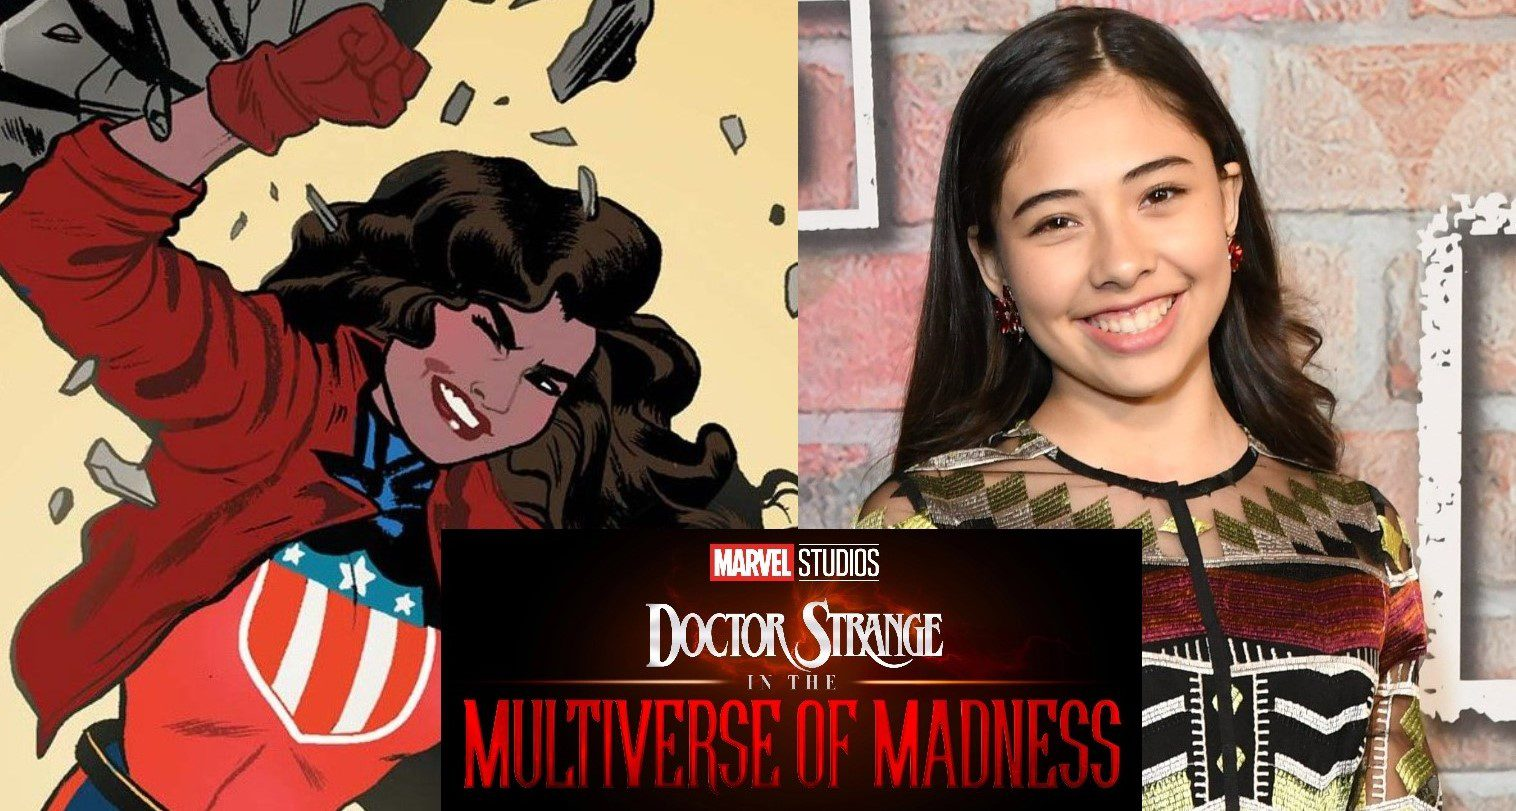 Baby-Sitters Club Star Xochitl Gomez joins the cast of Doctor Strange 2